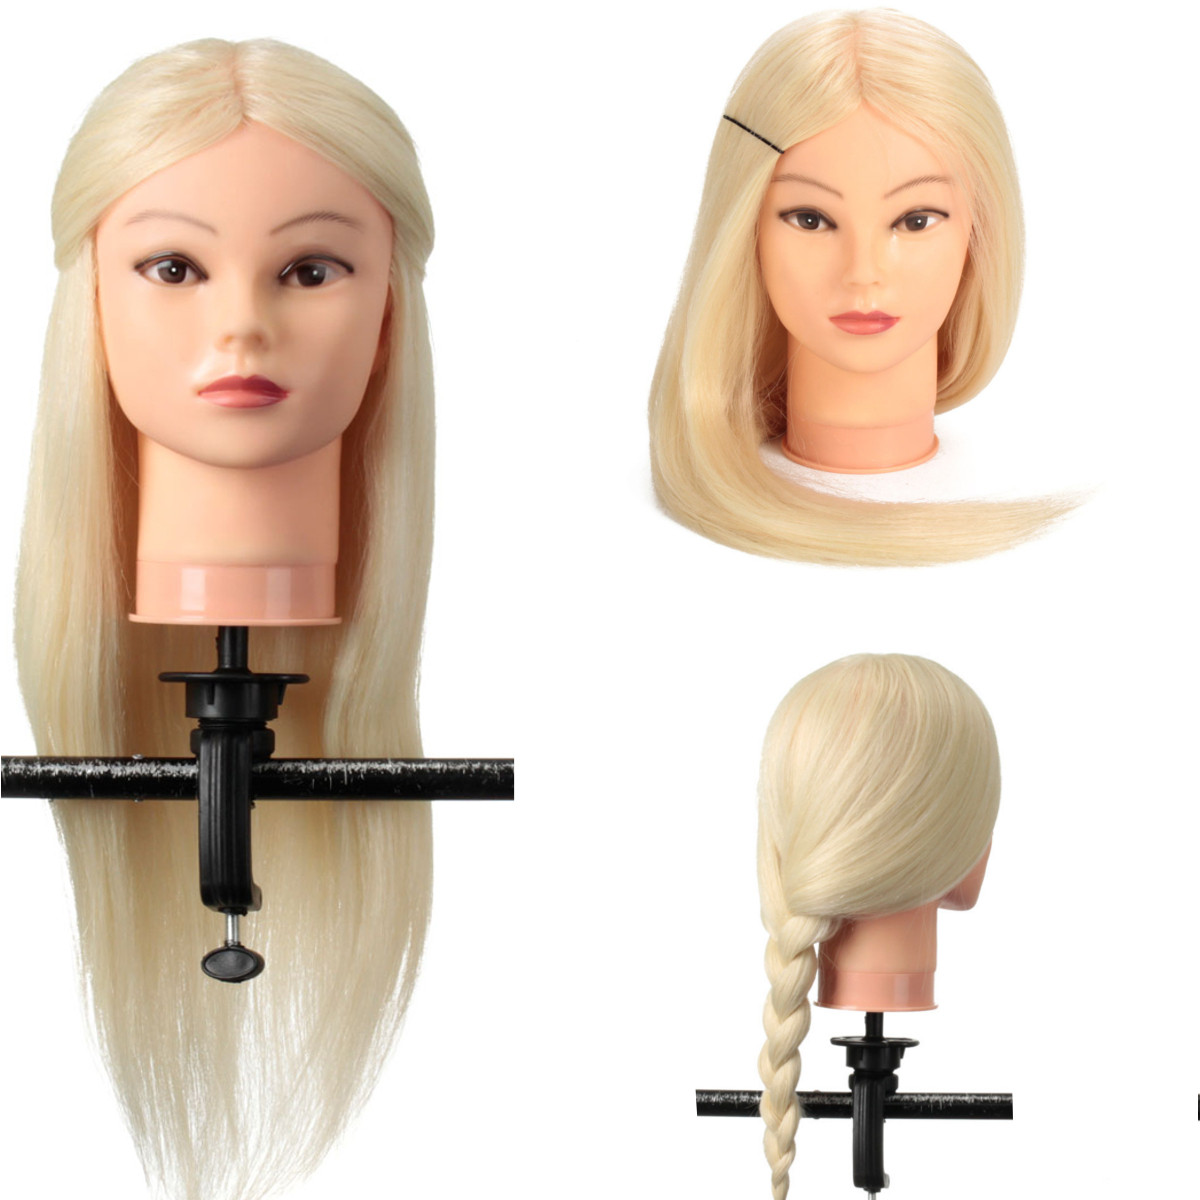 24 Inch 90% Real Human Hair Blonde Straight Hair Training Head Hairdressing Practice Training Mannequin Hair Model Doll Head New